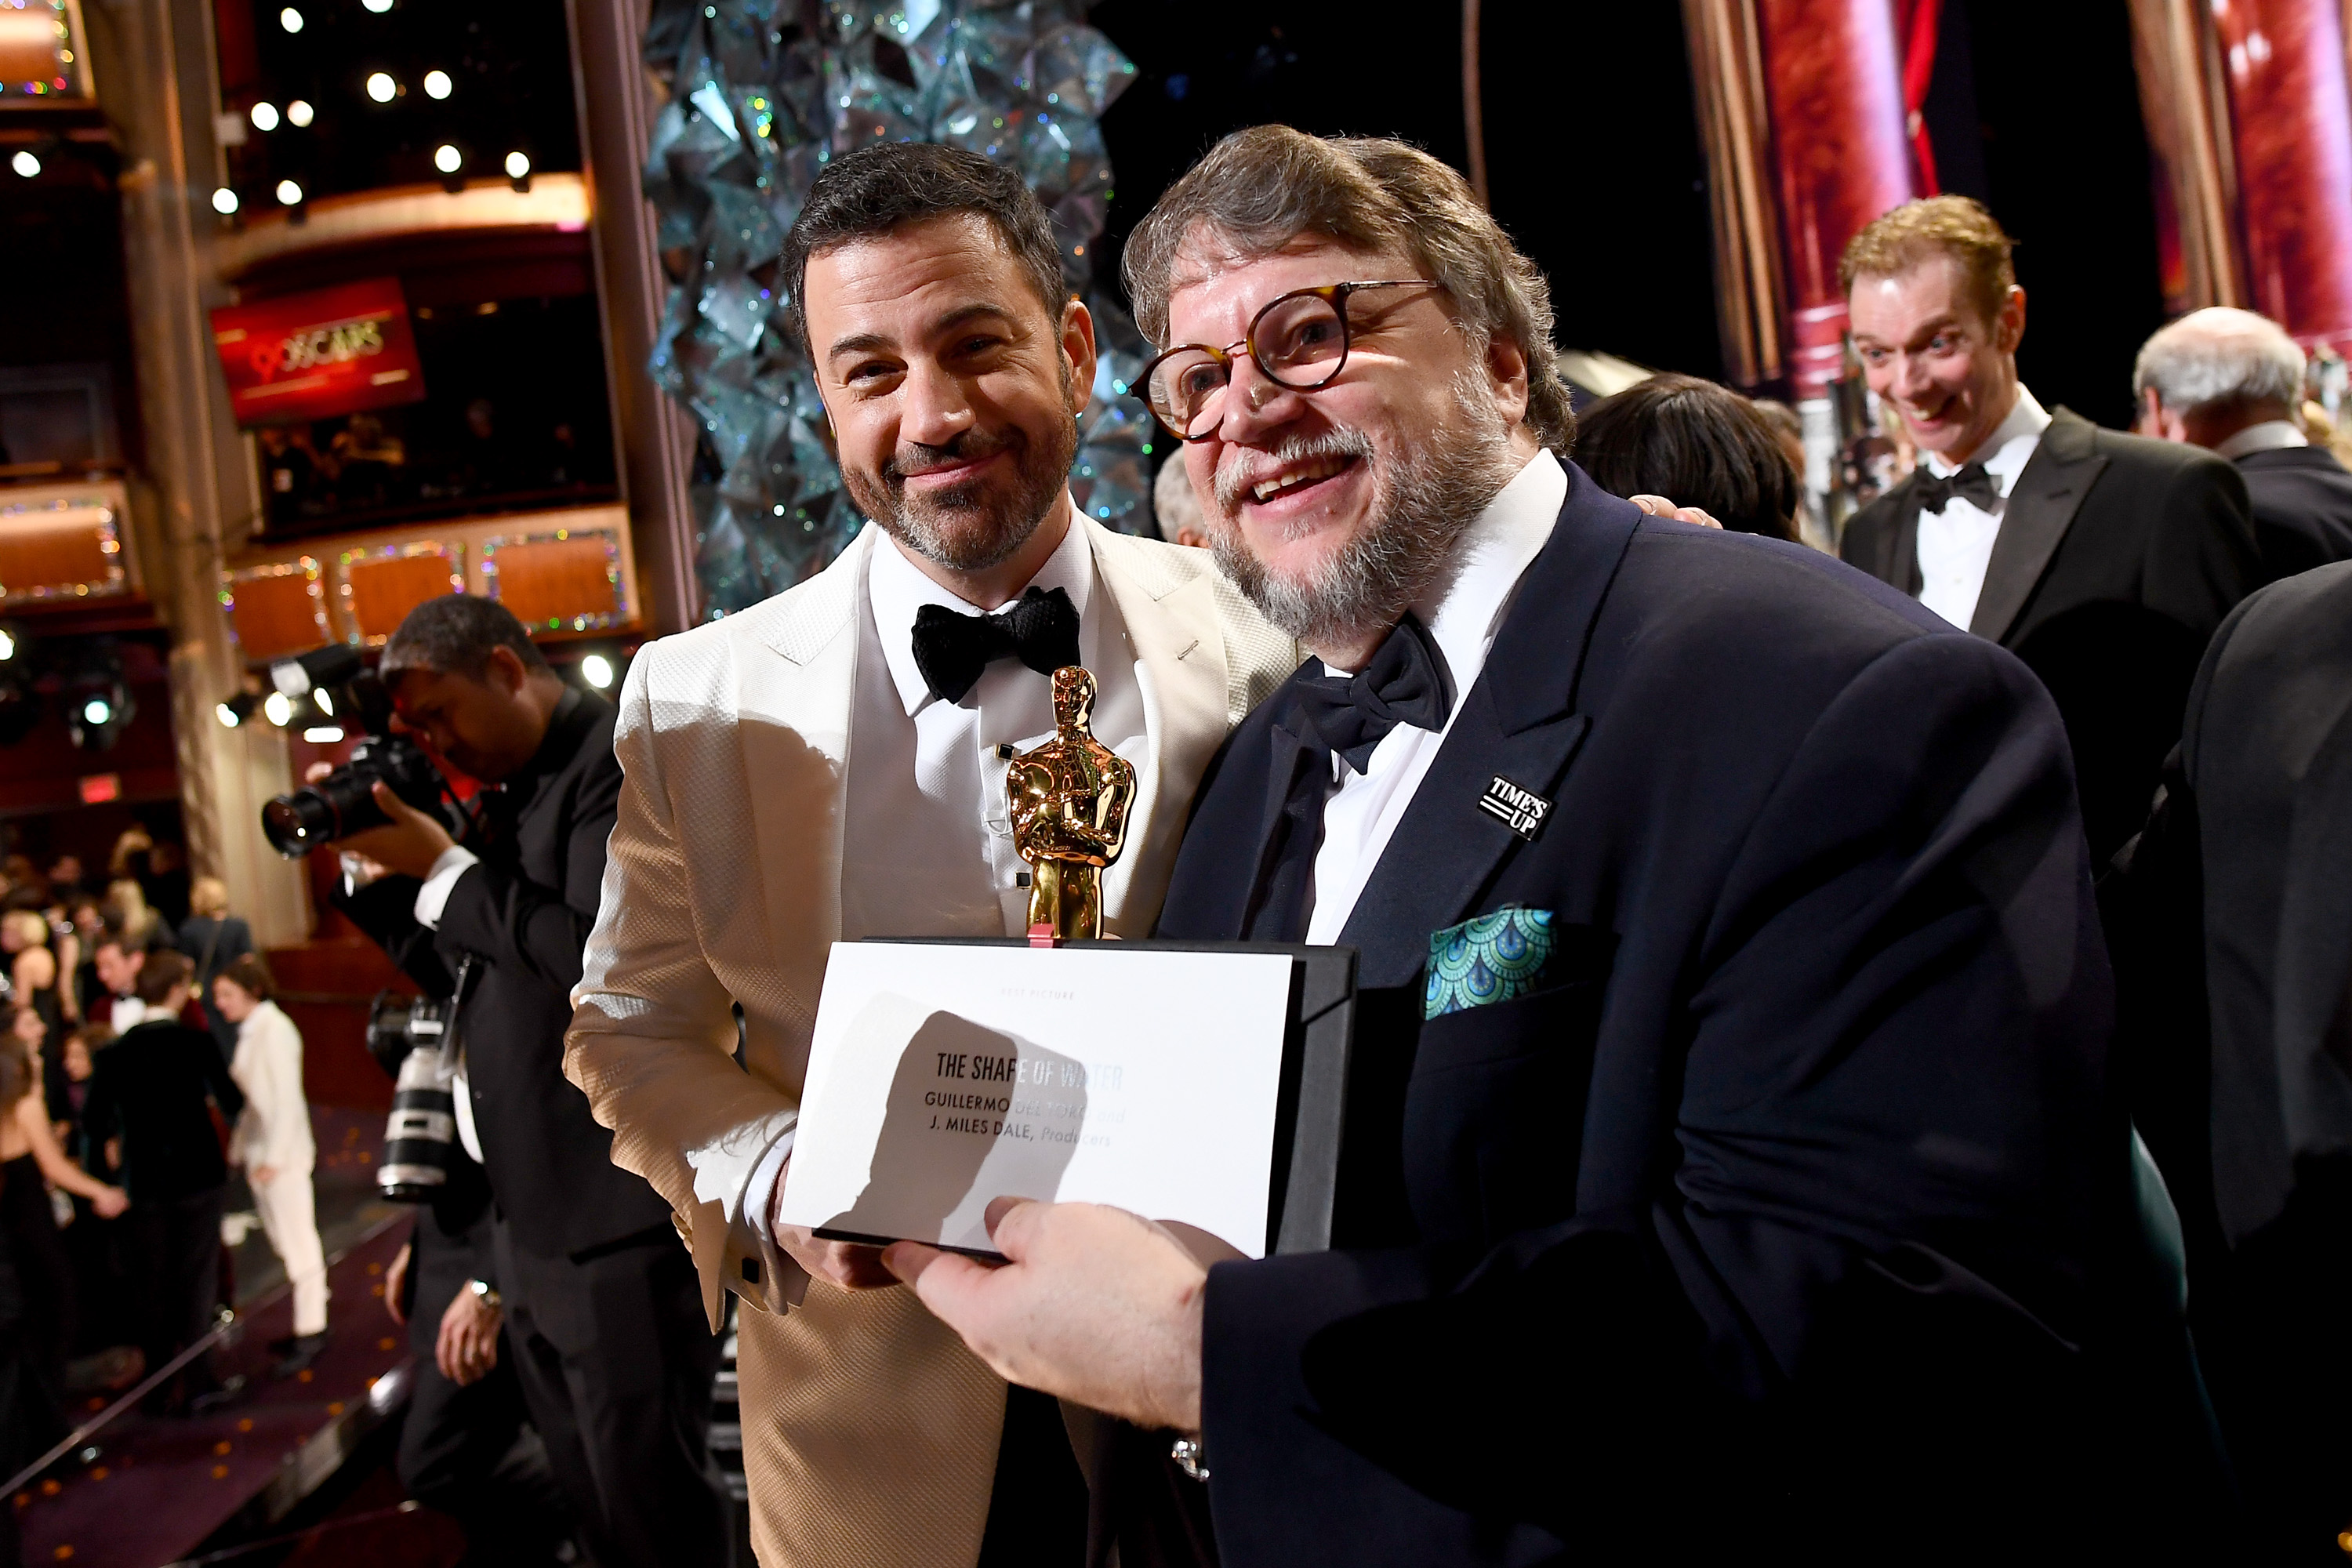 Jimmy Kimmel and Guillermo del Toro at the 2018 Oscars